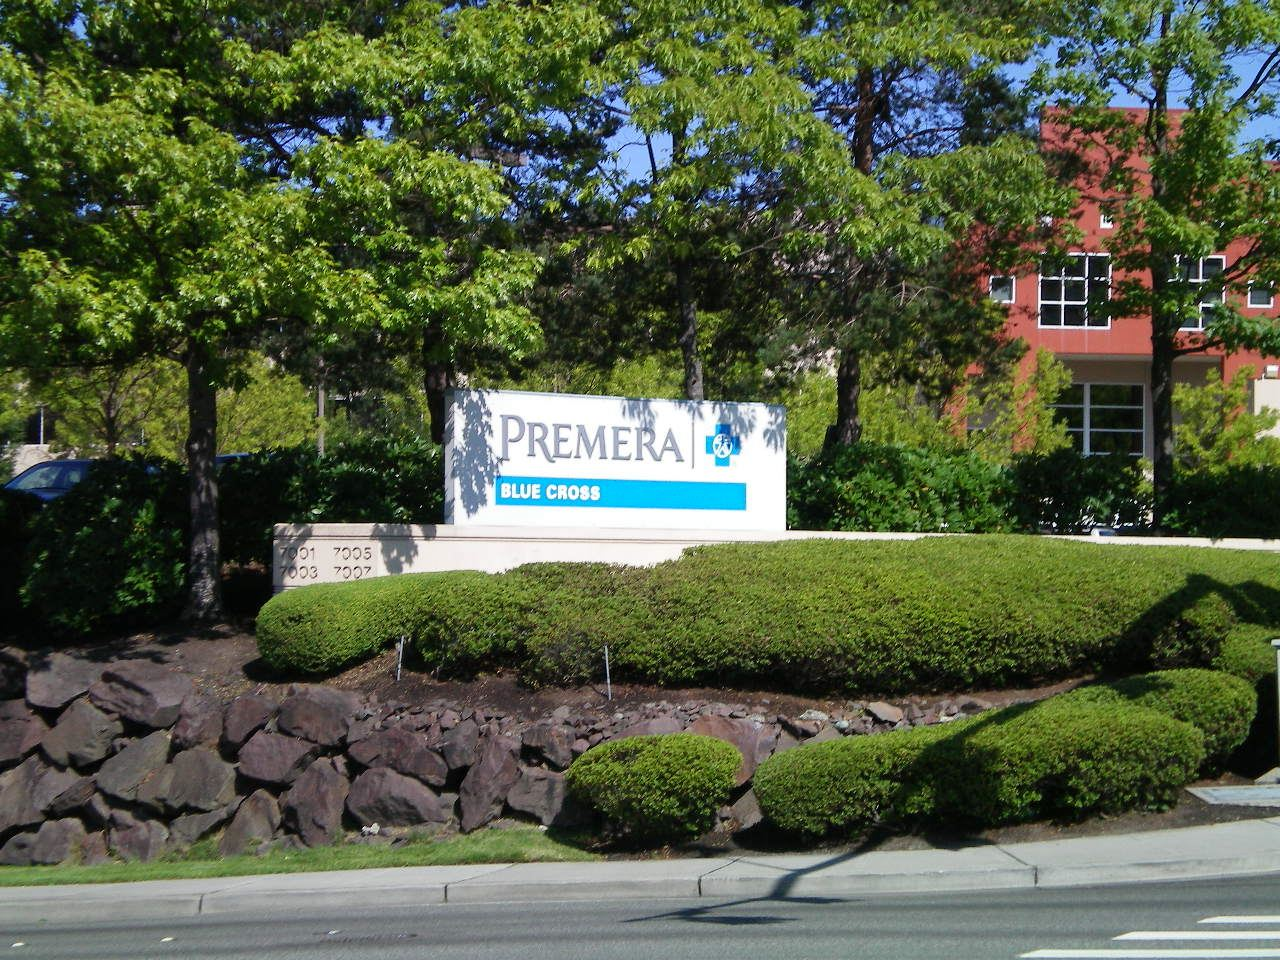 Premera Blue Cross Sign